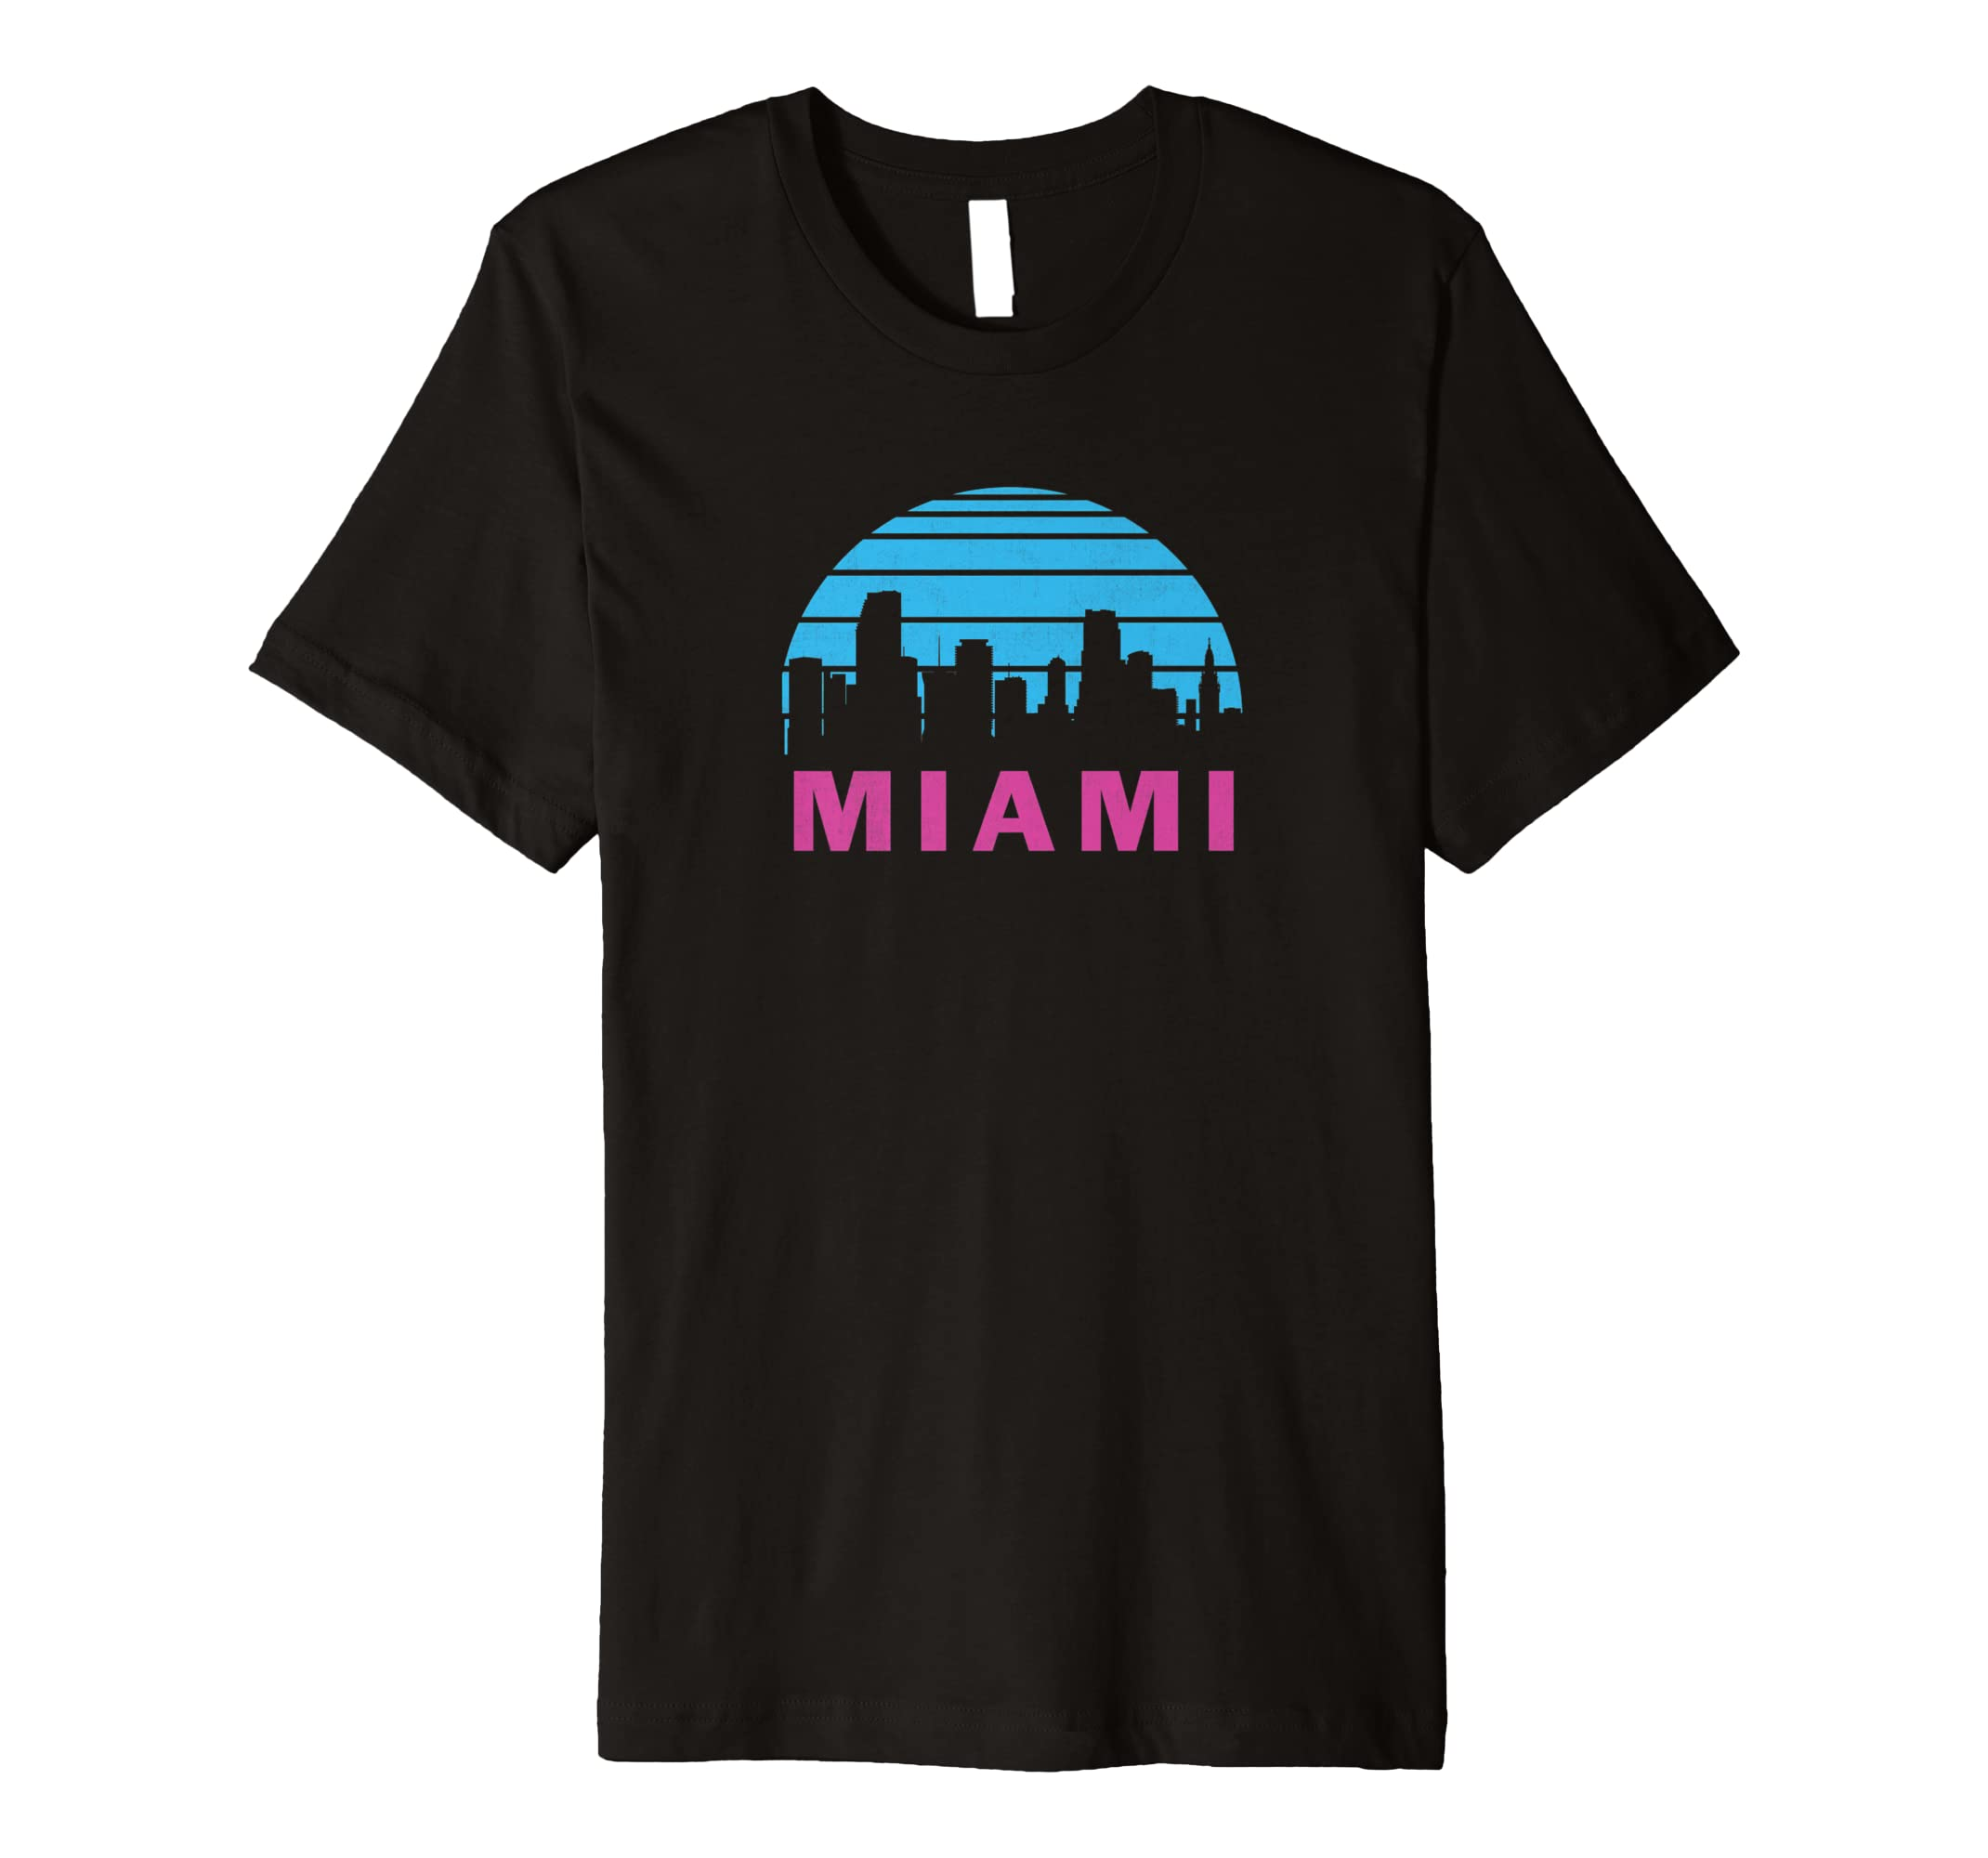 d46185cea450 Amazon.com  Cool Miami Florida Cityscape Vintage Graphic T-Shirt  Clothing